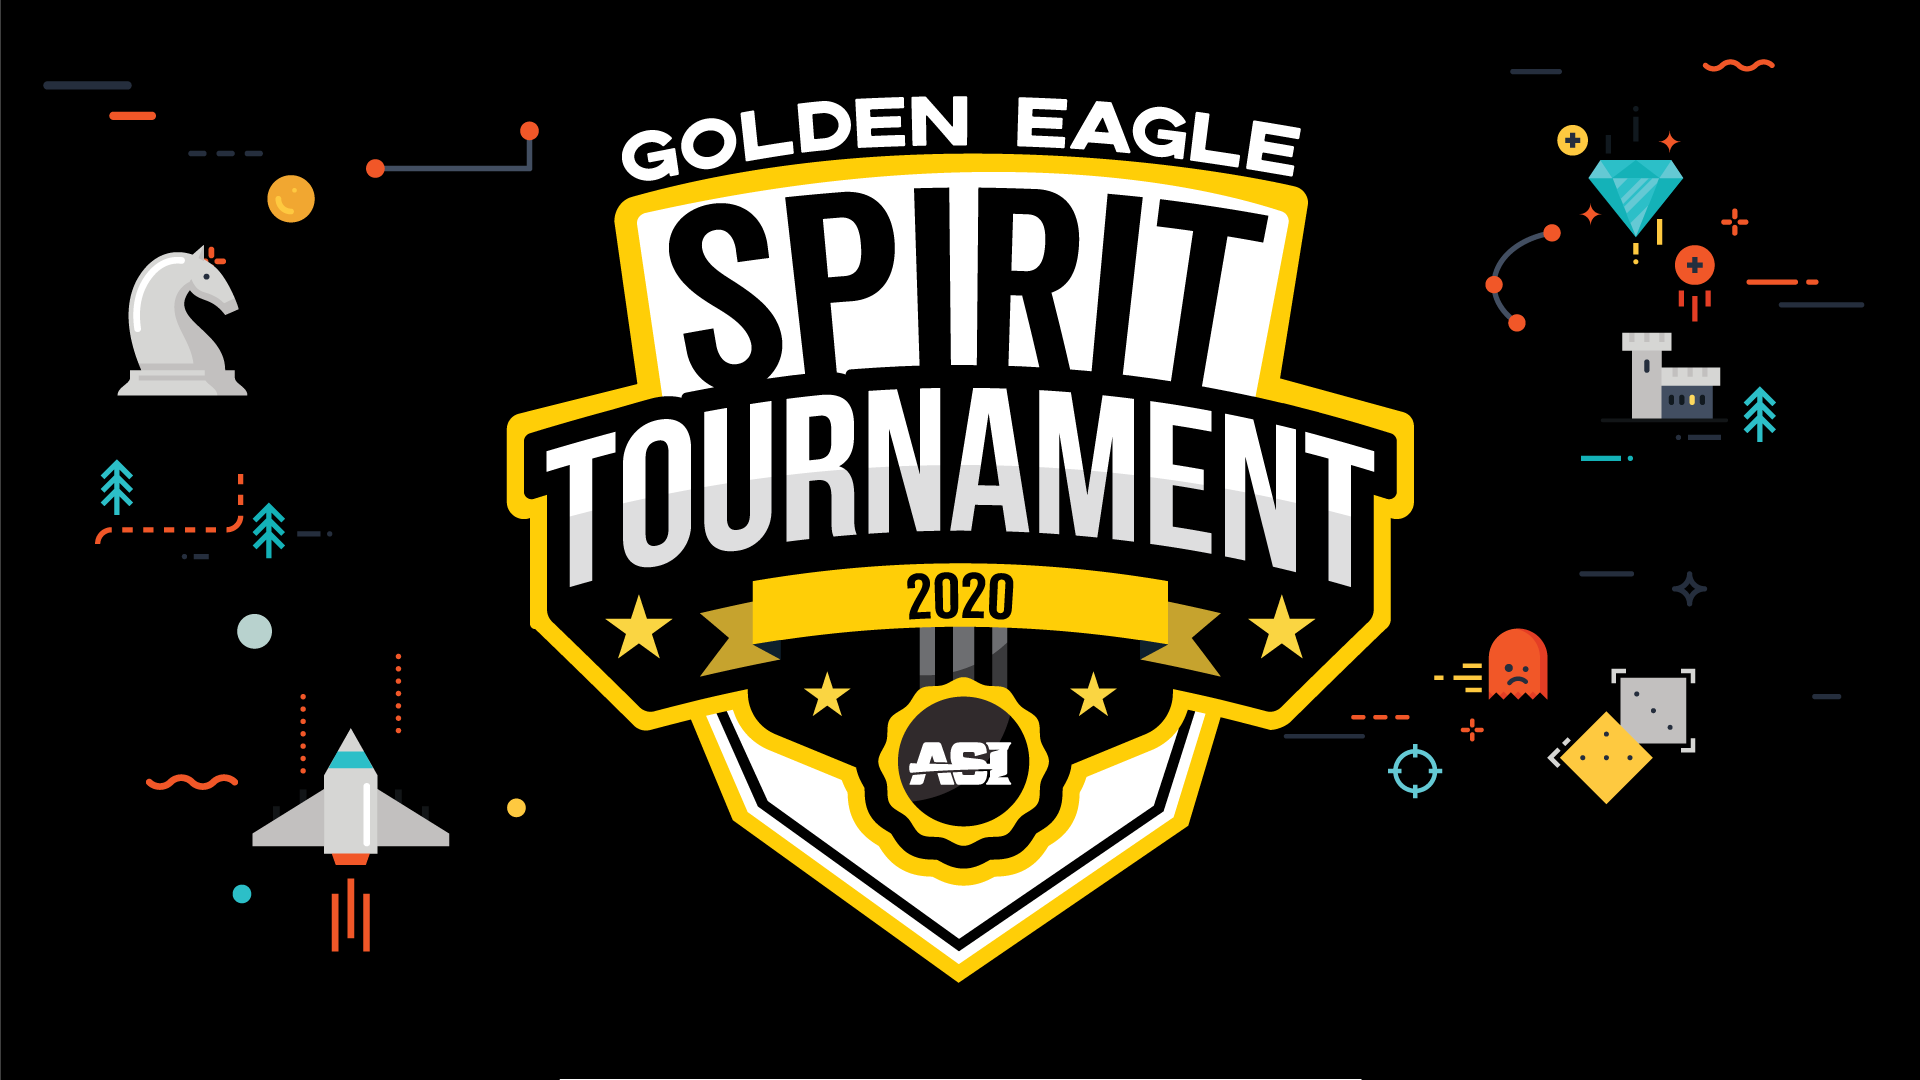 Golden Eagle Spirit Tournament